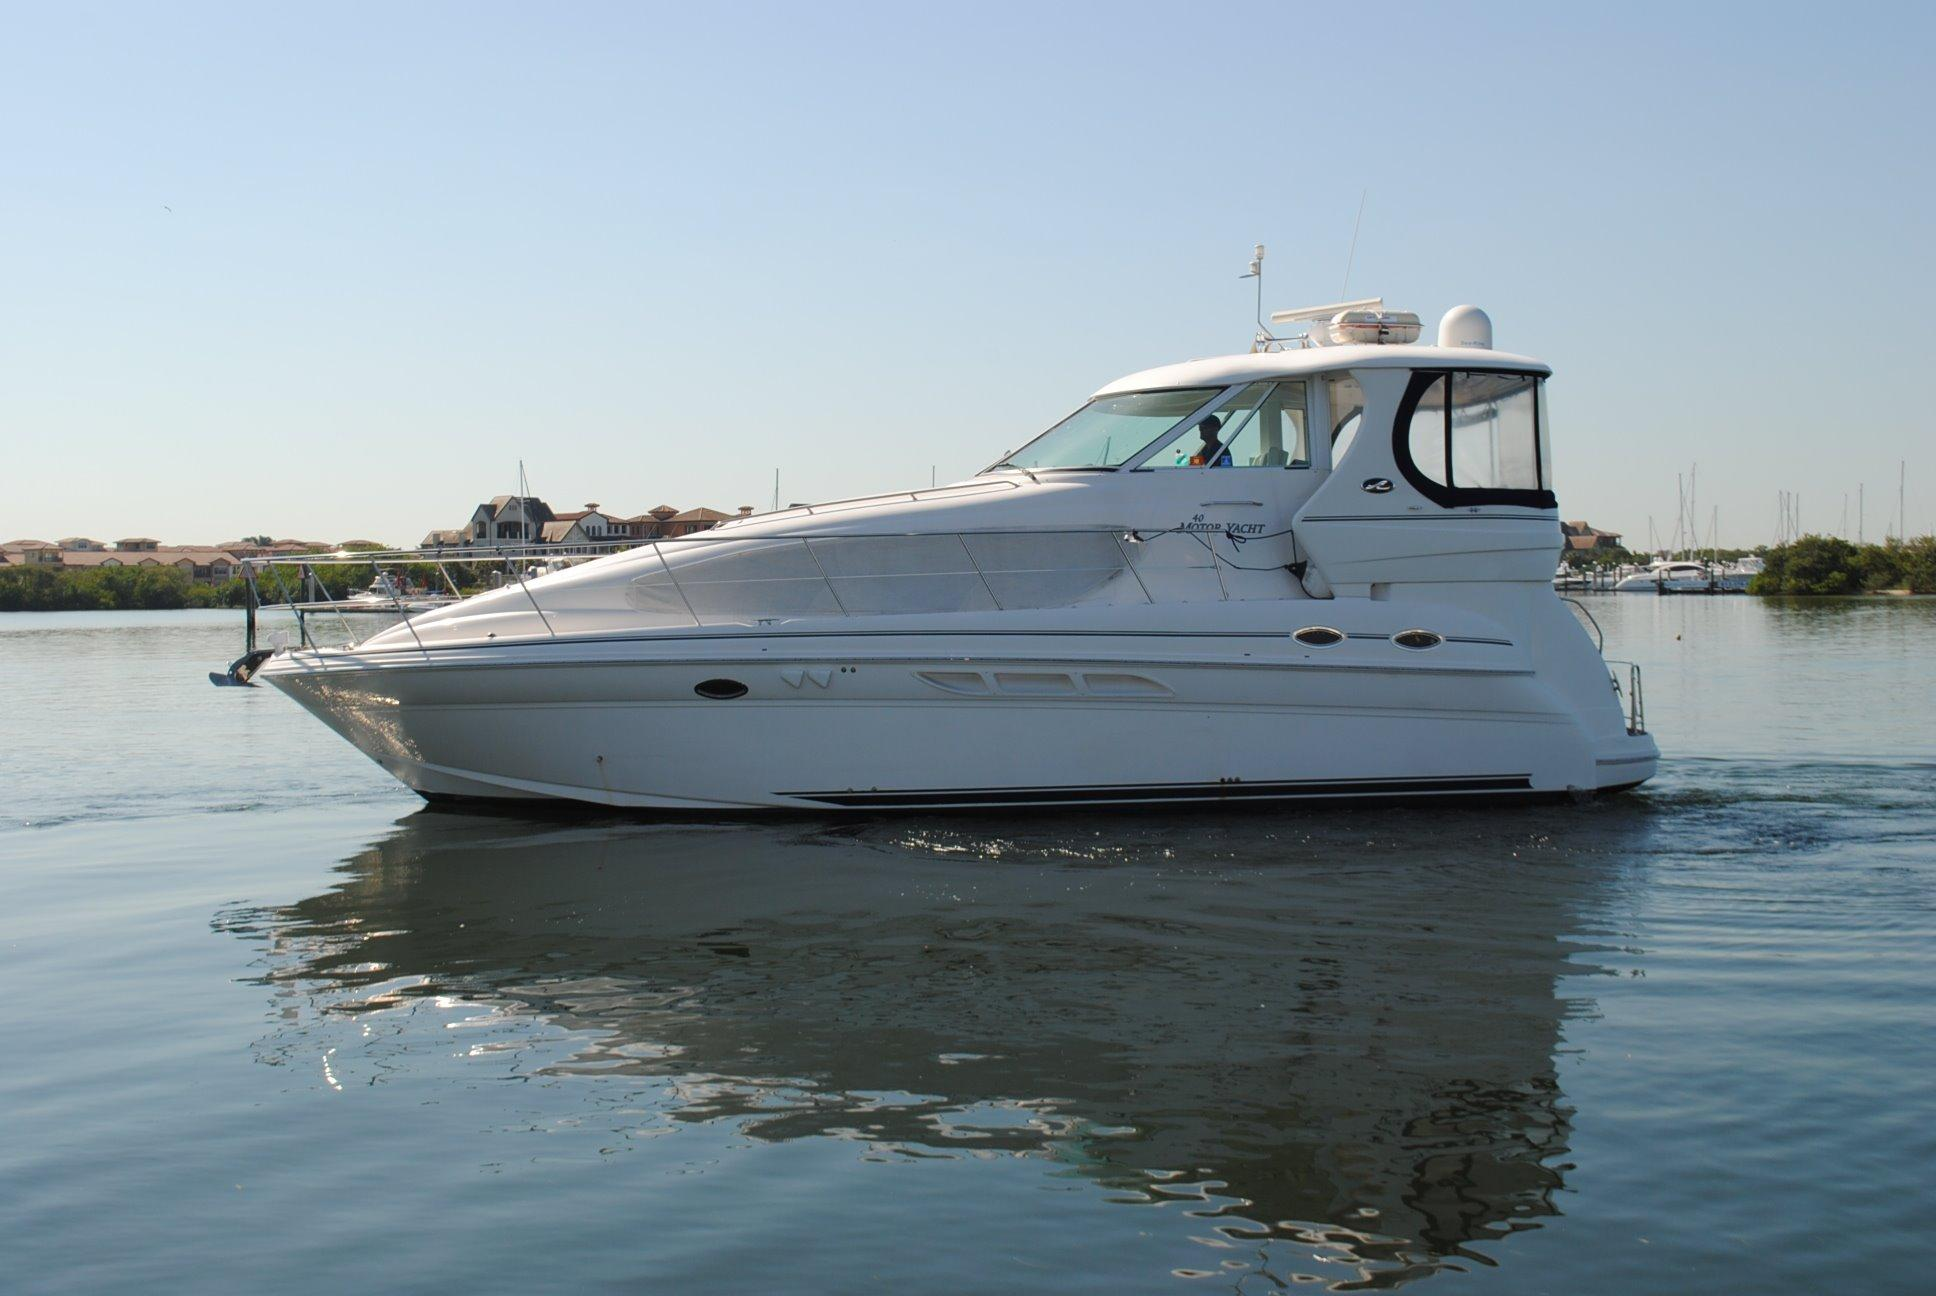 40 sea ray 2006 for sale in tampa florida us denison for Sea ray motor yacht for sale